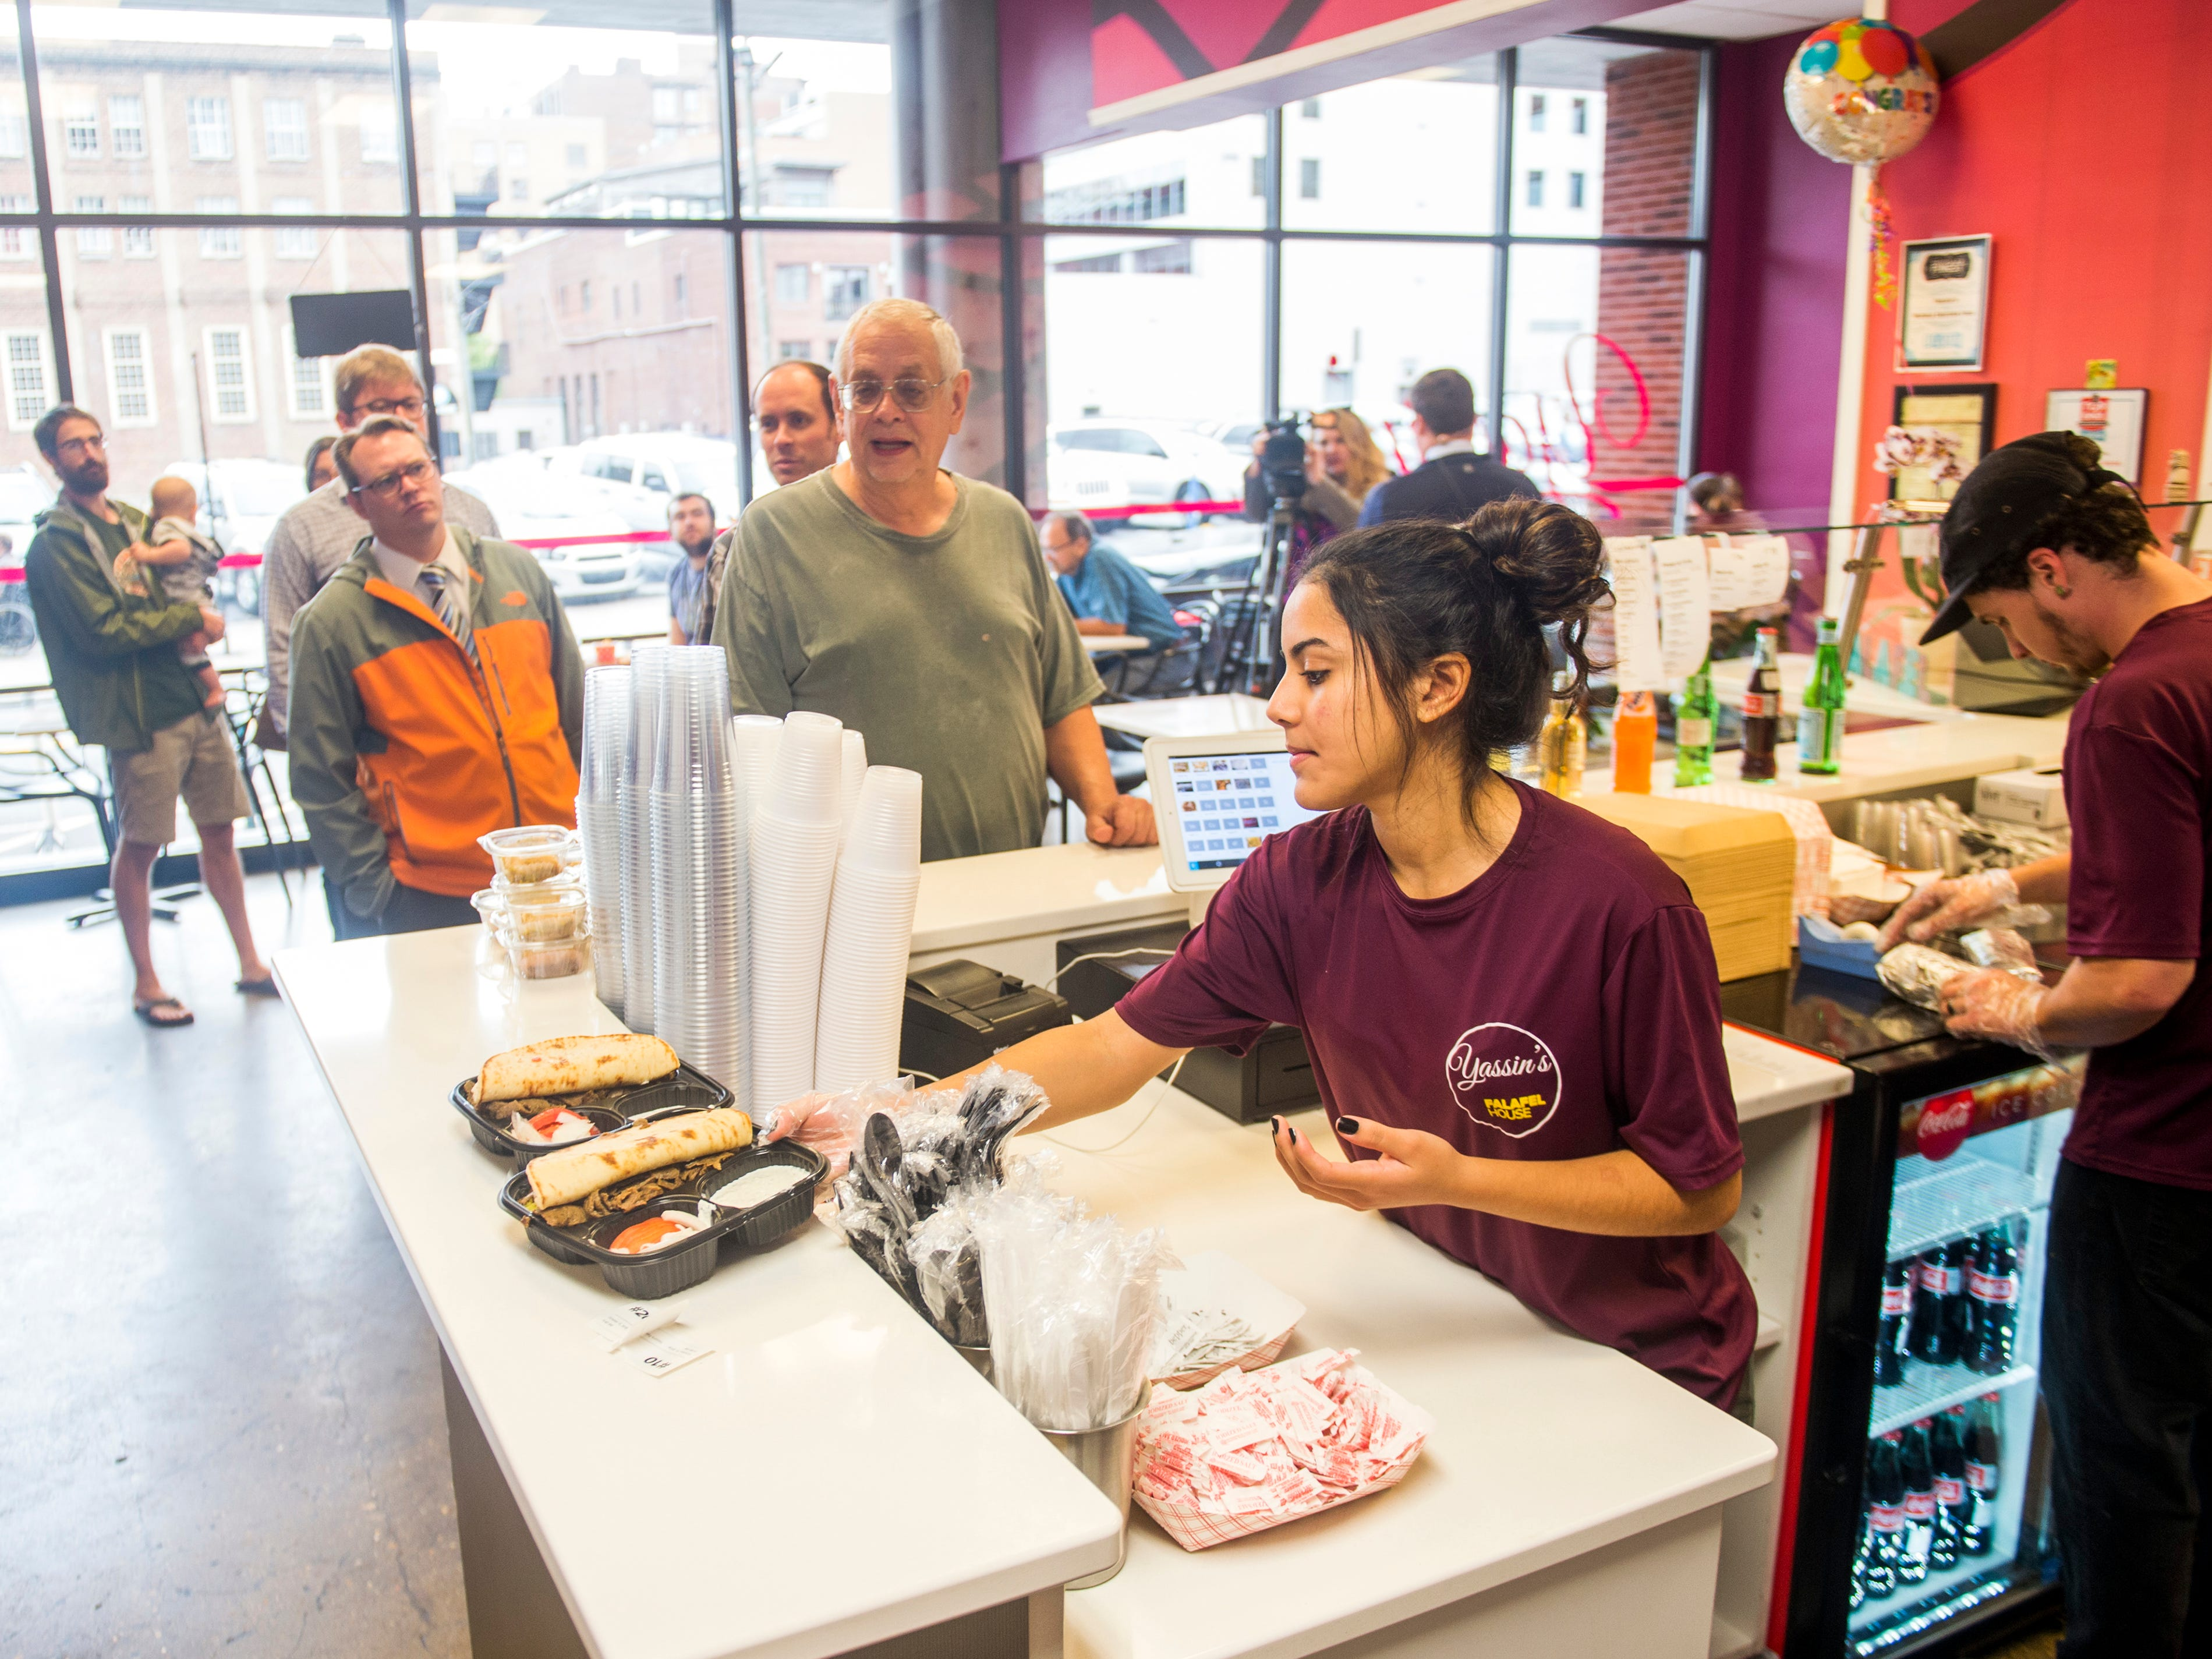 """A line begins to form at lunchtime at Yassin's Falafel House in downtown Knoxville on Thursday, October 11, 2018. Yassin's Falafel House was named """"Nicest Place in America"""" by Reader's Digest."""